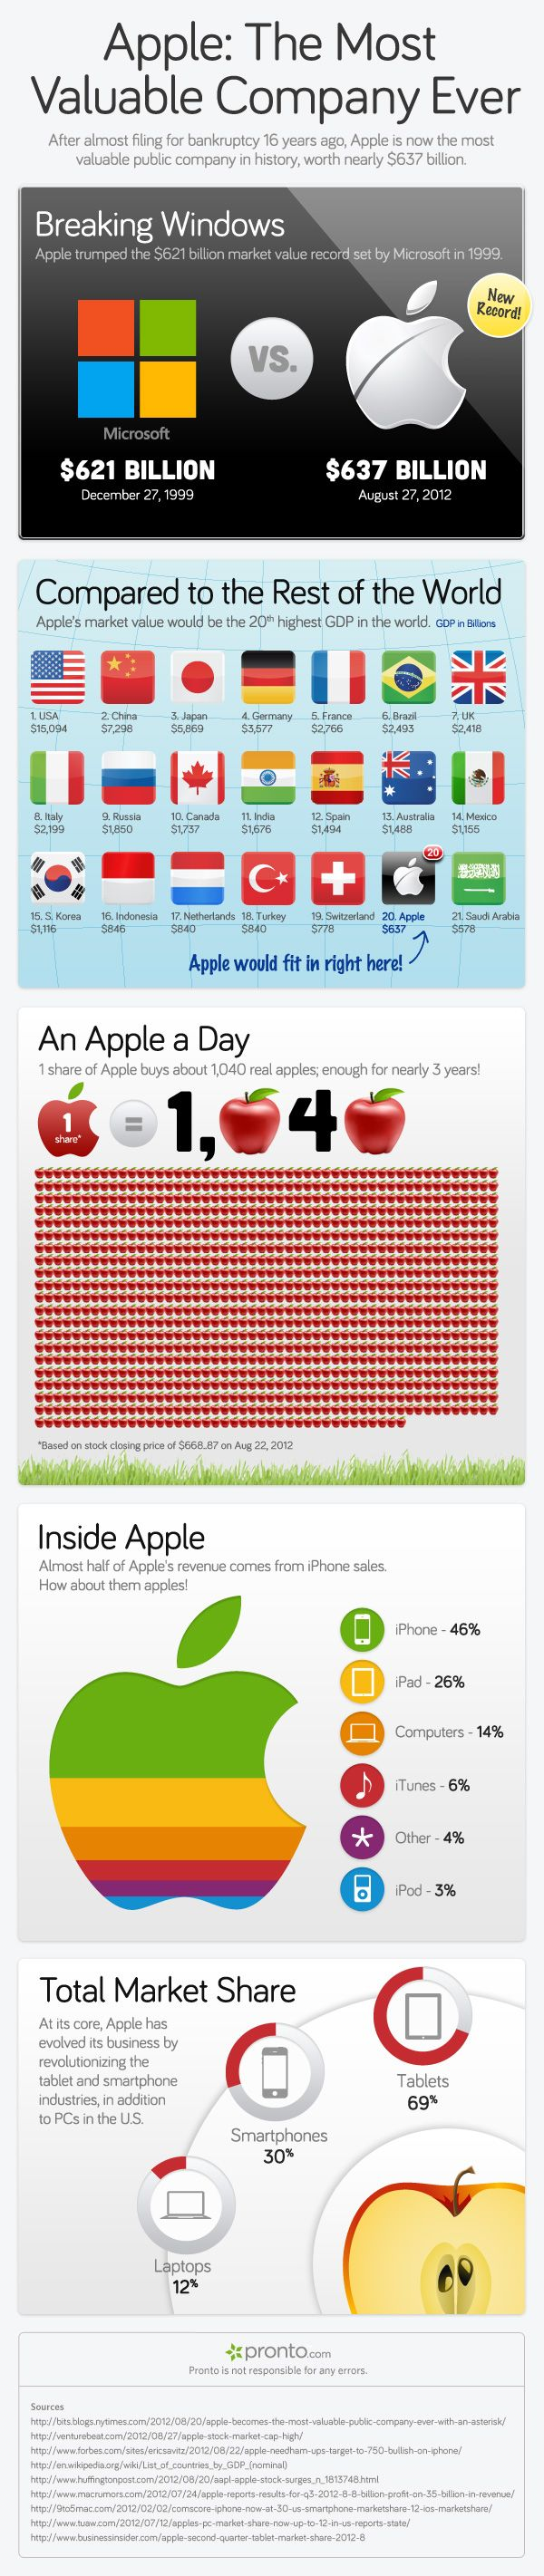 Apple: The Most Valuable Company Ever